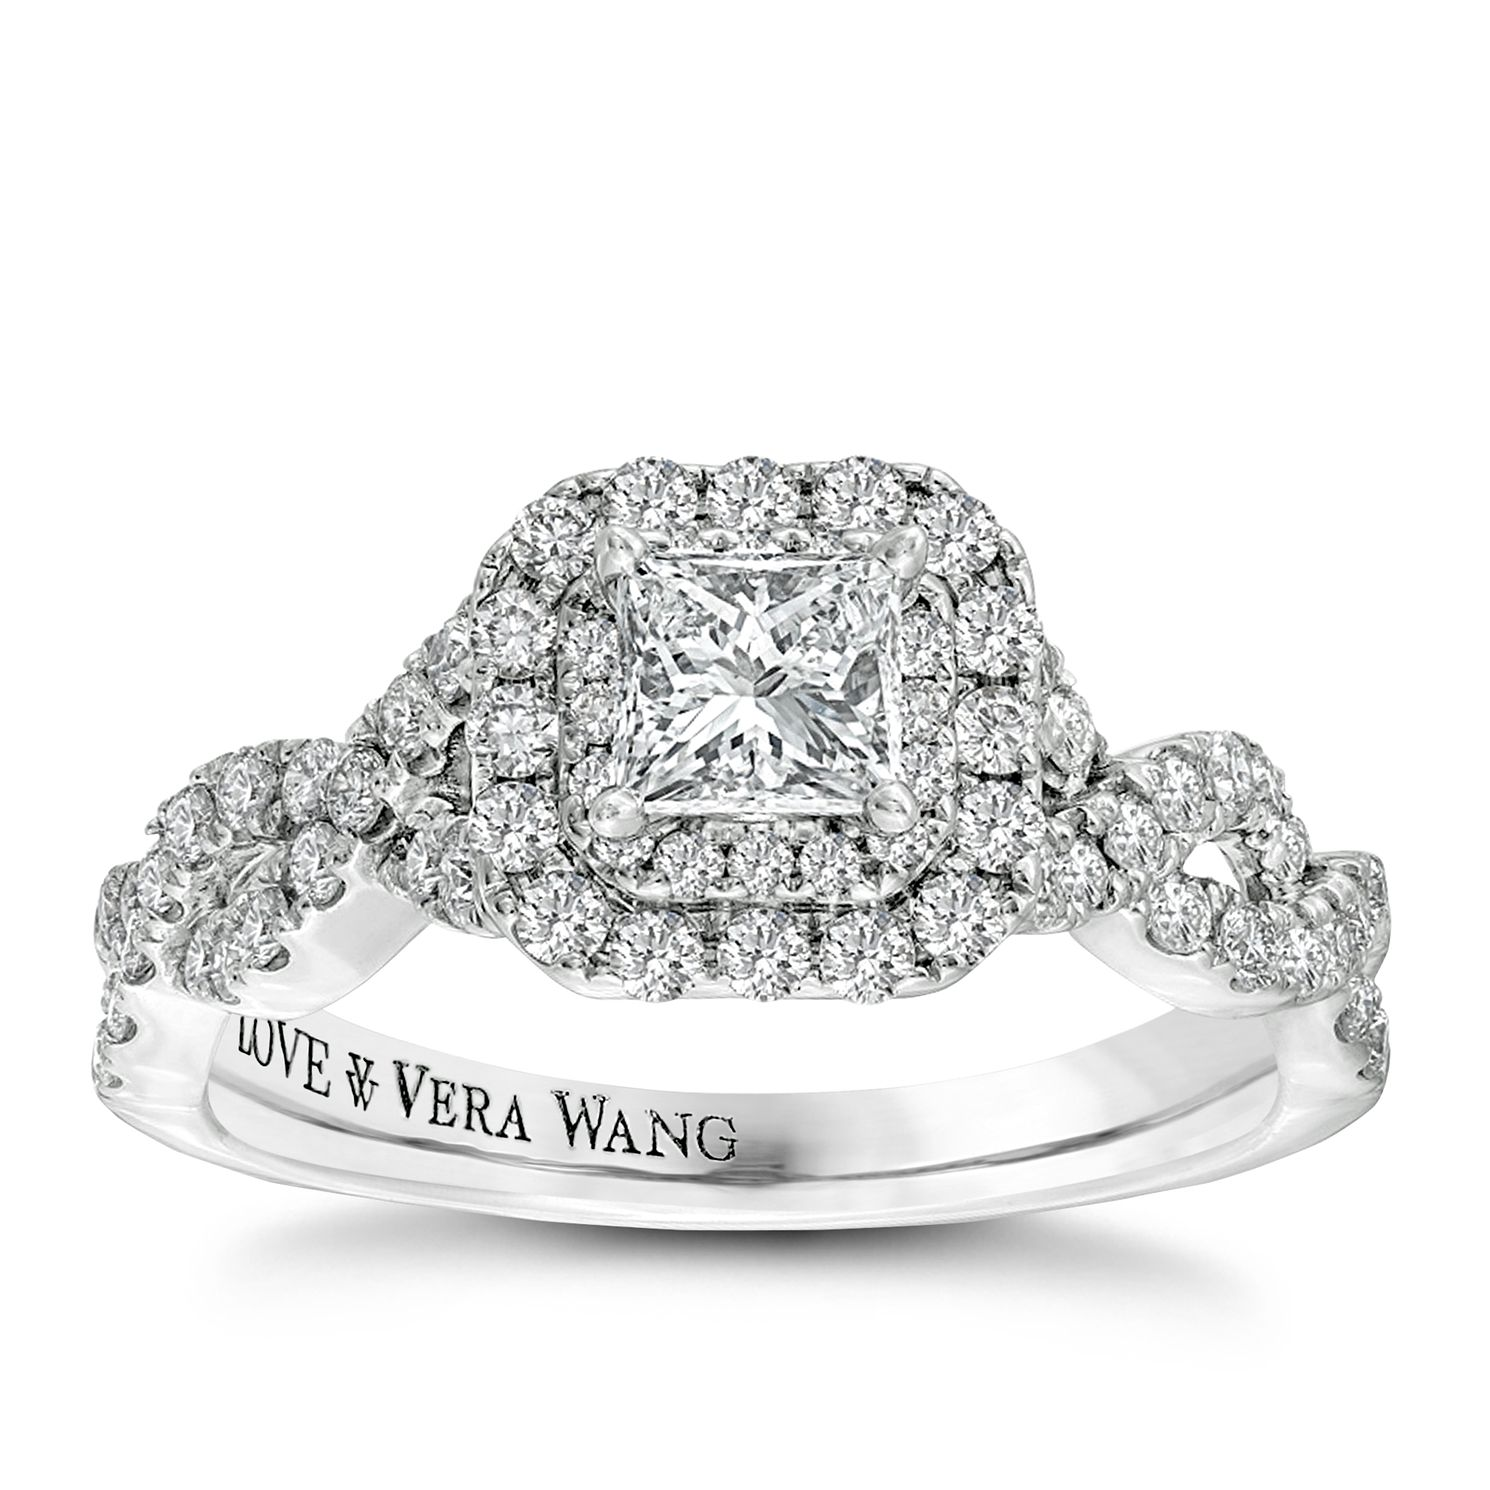 love rings zales ring elegant of wang beautiful vera sears verawanglovecollection jewelry verawang engagement collection wedding